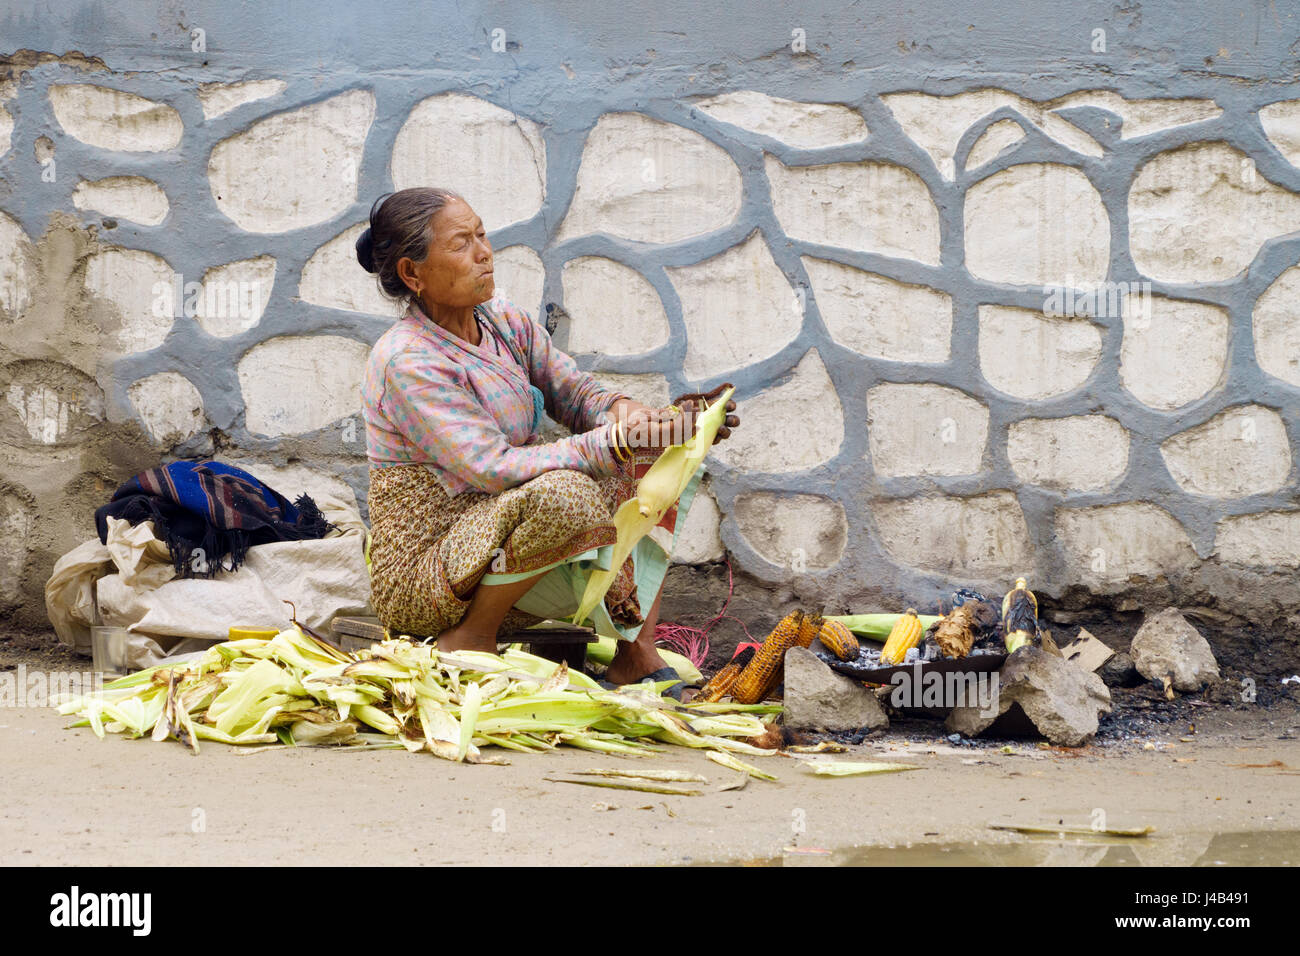 Old indigent woman roasting corn on the side of the street in heavily polluted air. Kathmandu, Nepal. - Stock Image